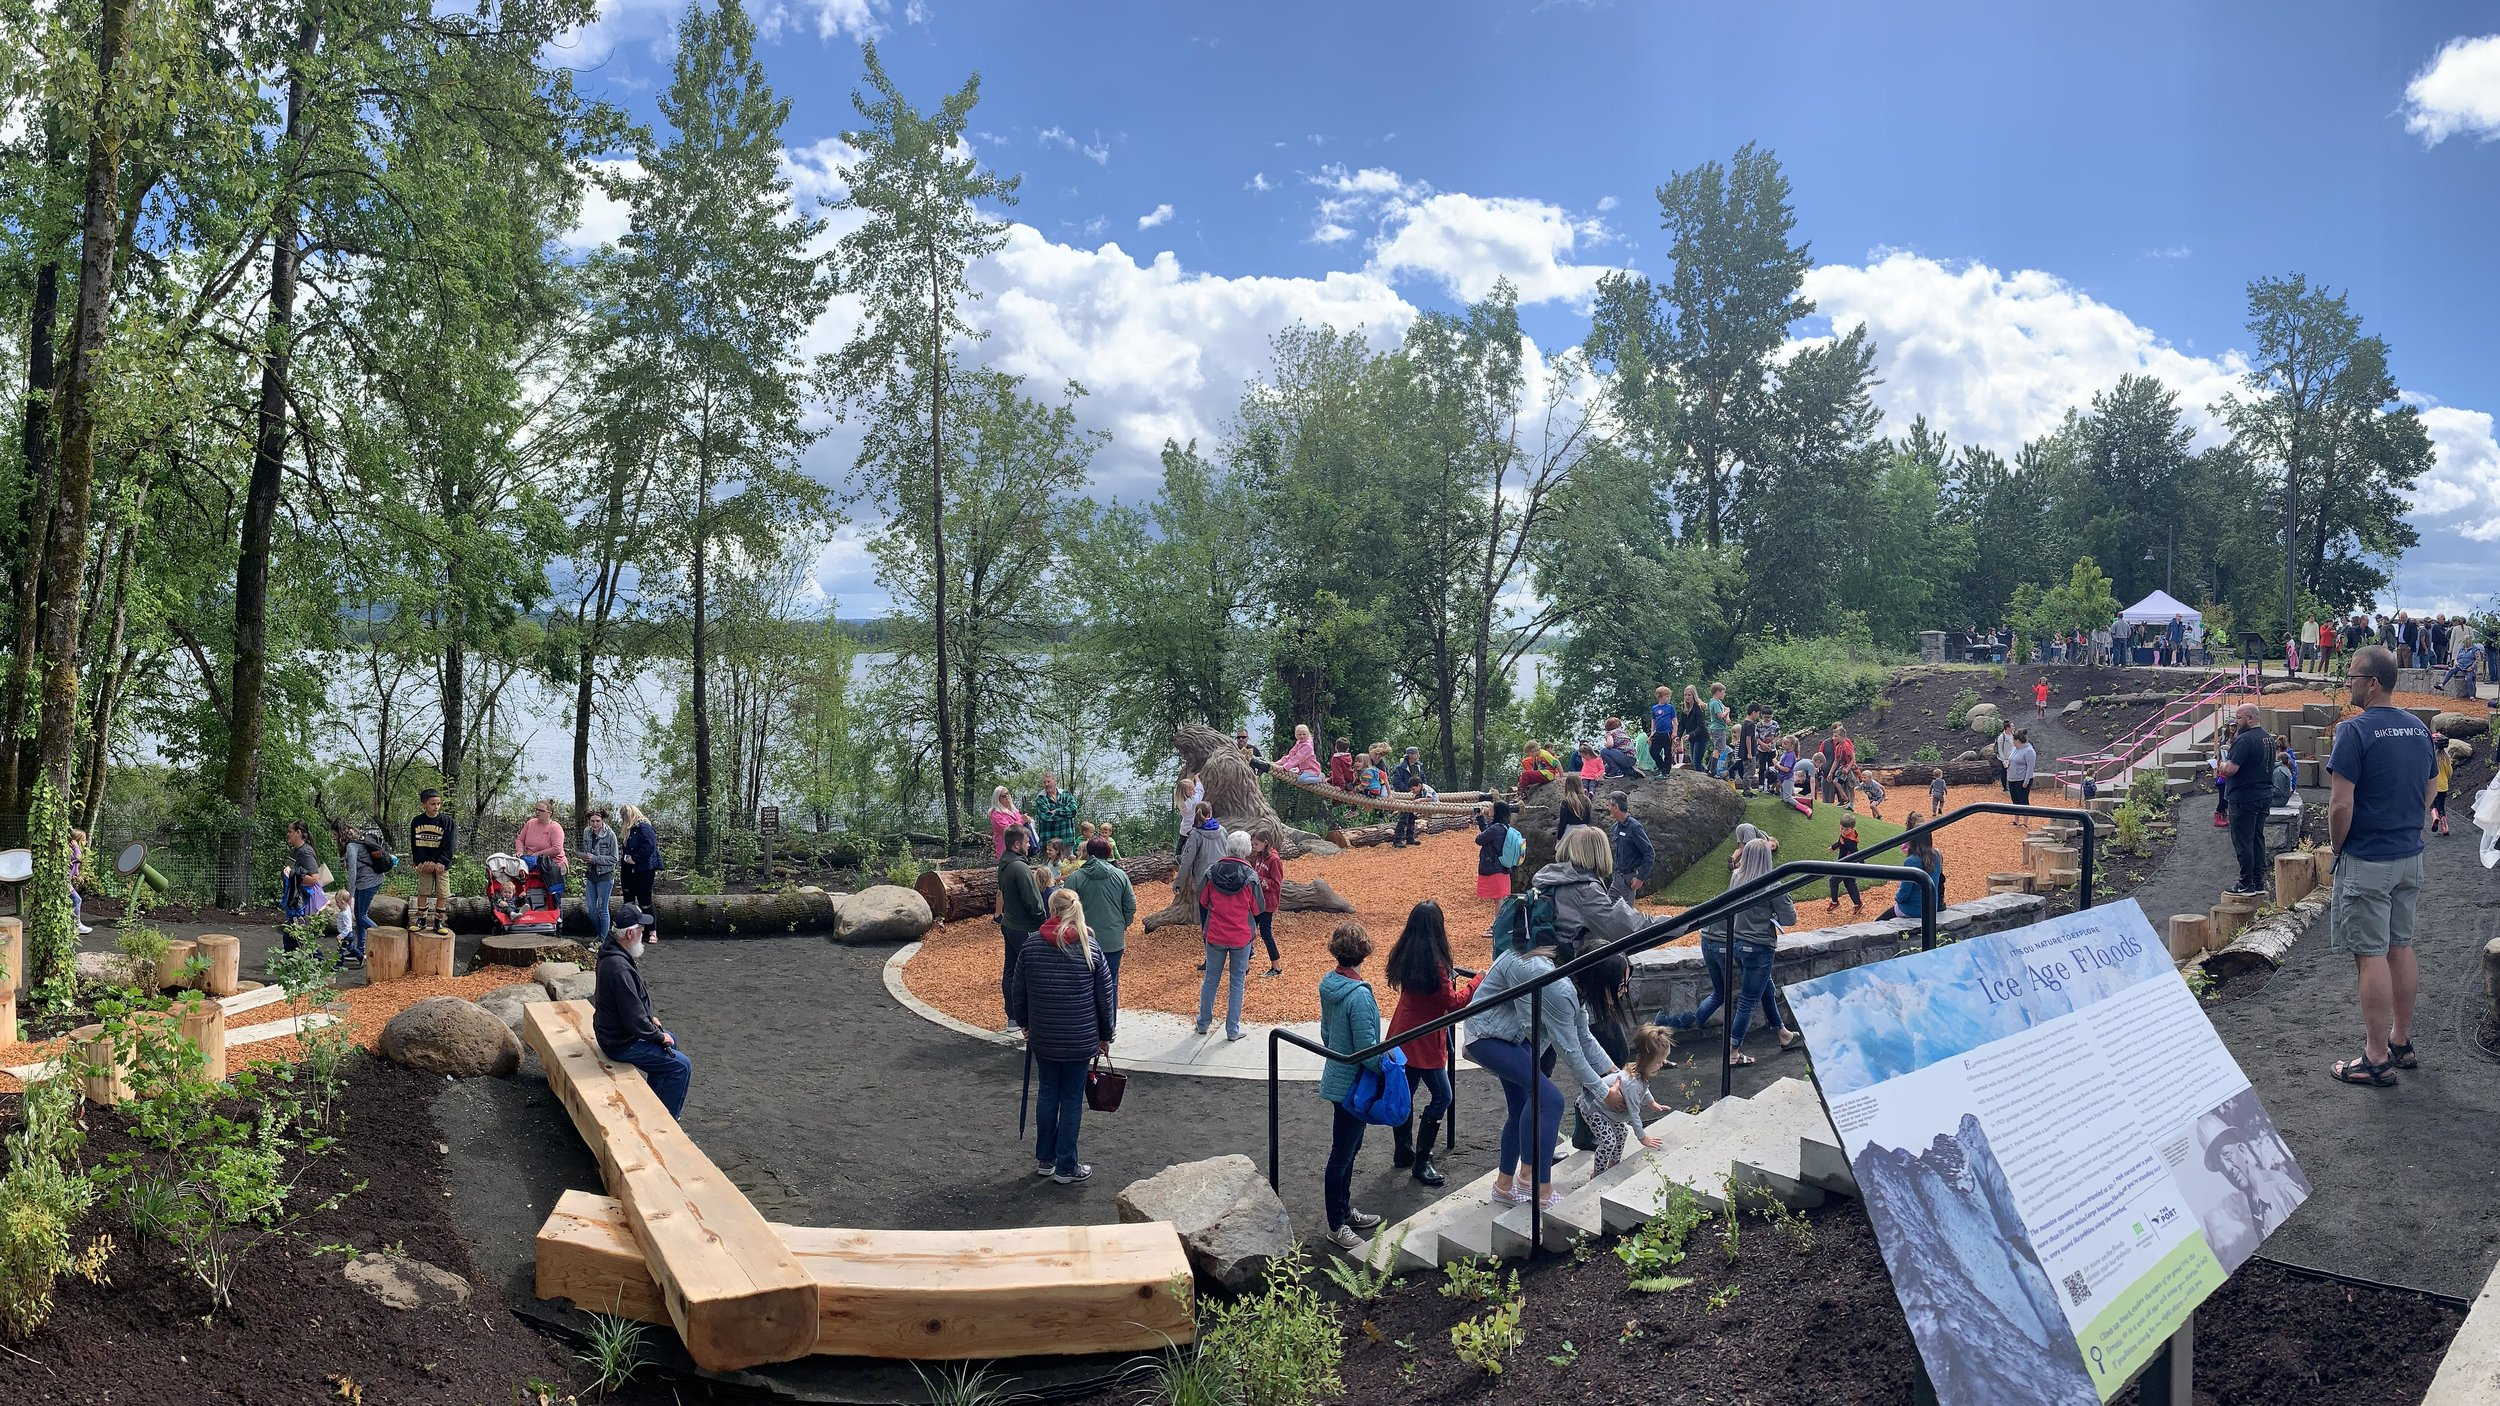 The grand opening of Washougal Waterfront Park in June